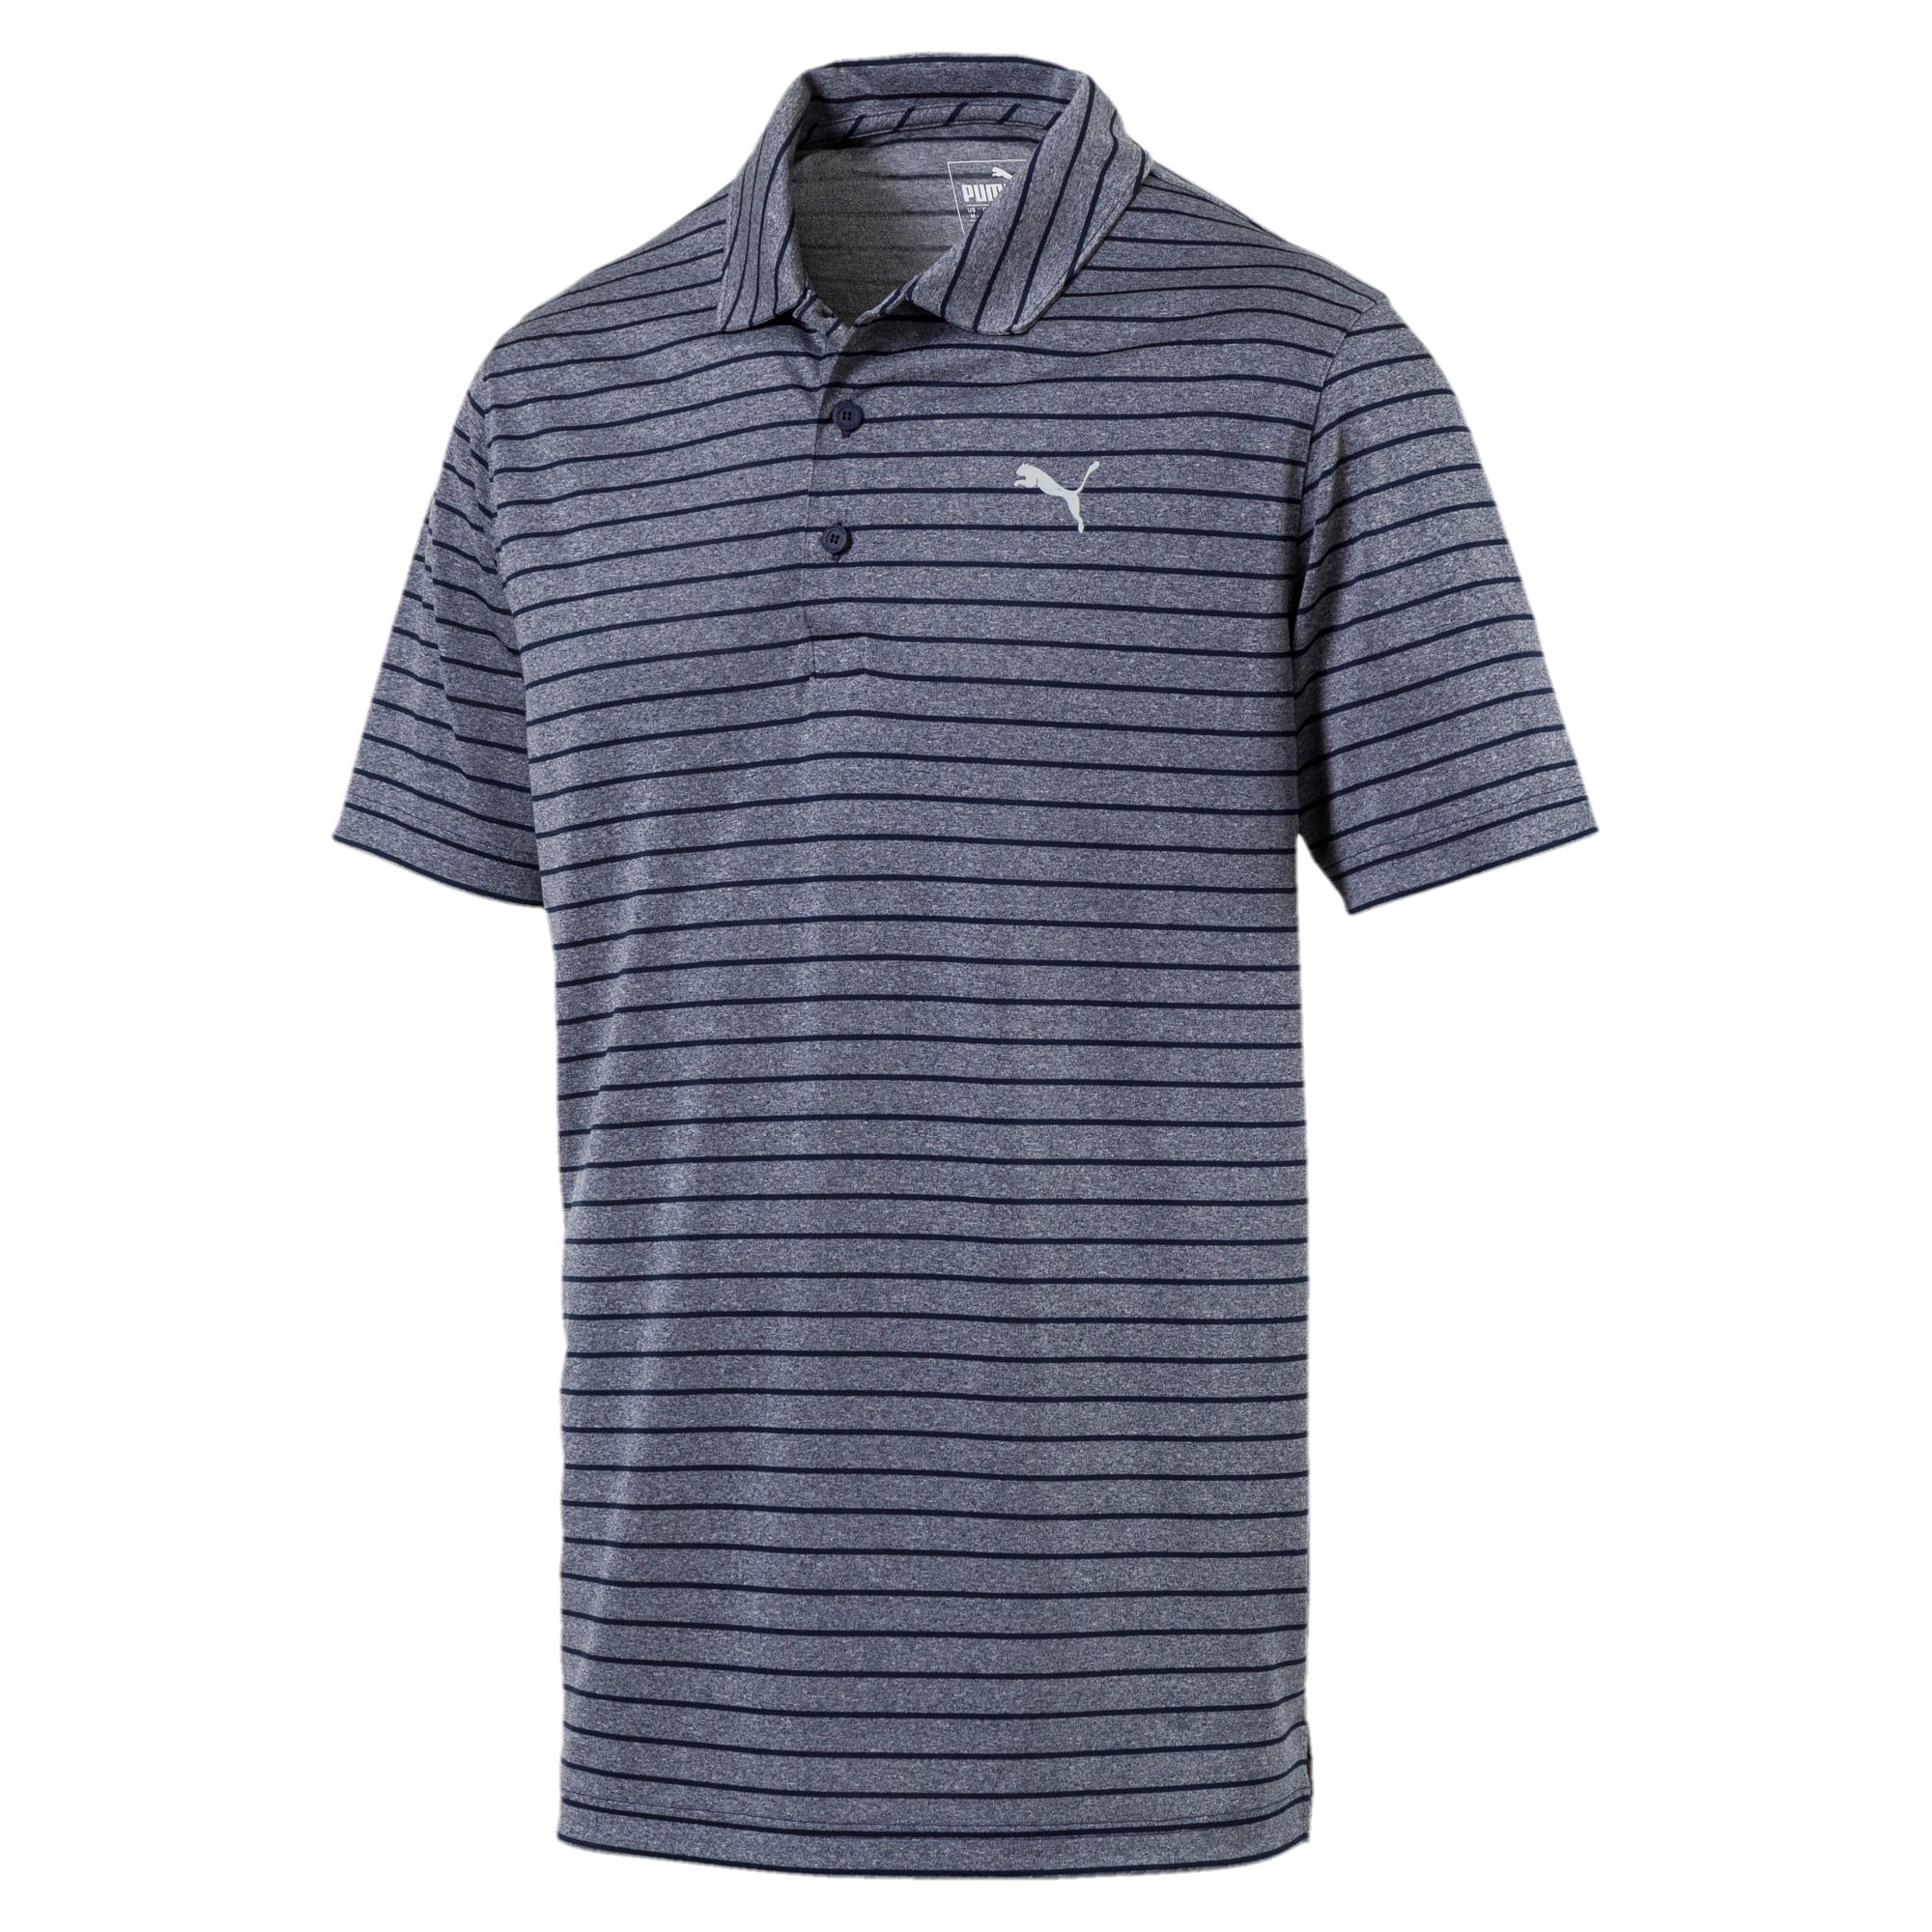 Rotation Men's Striped Polo, Peacoat, large